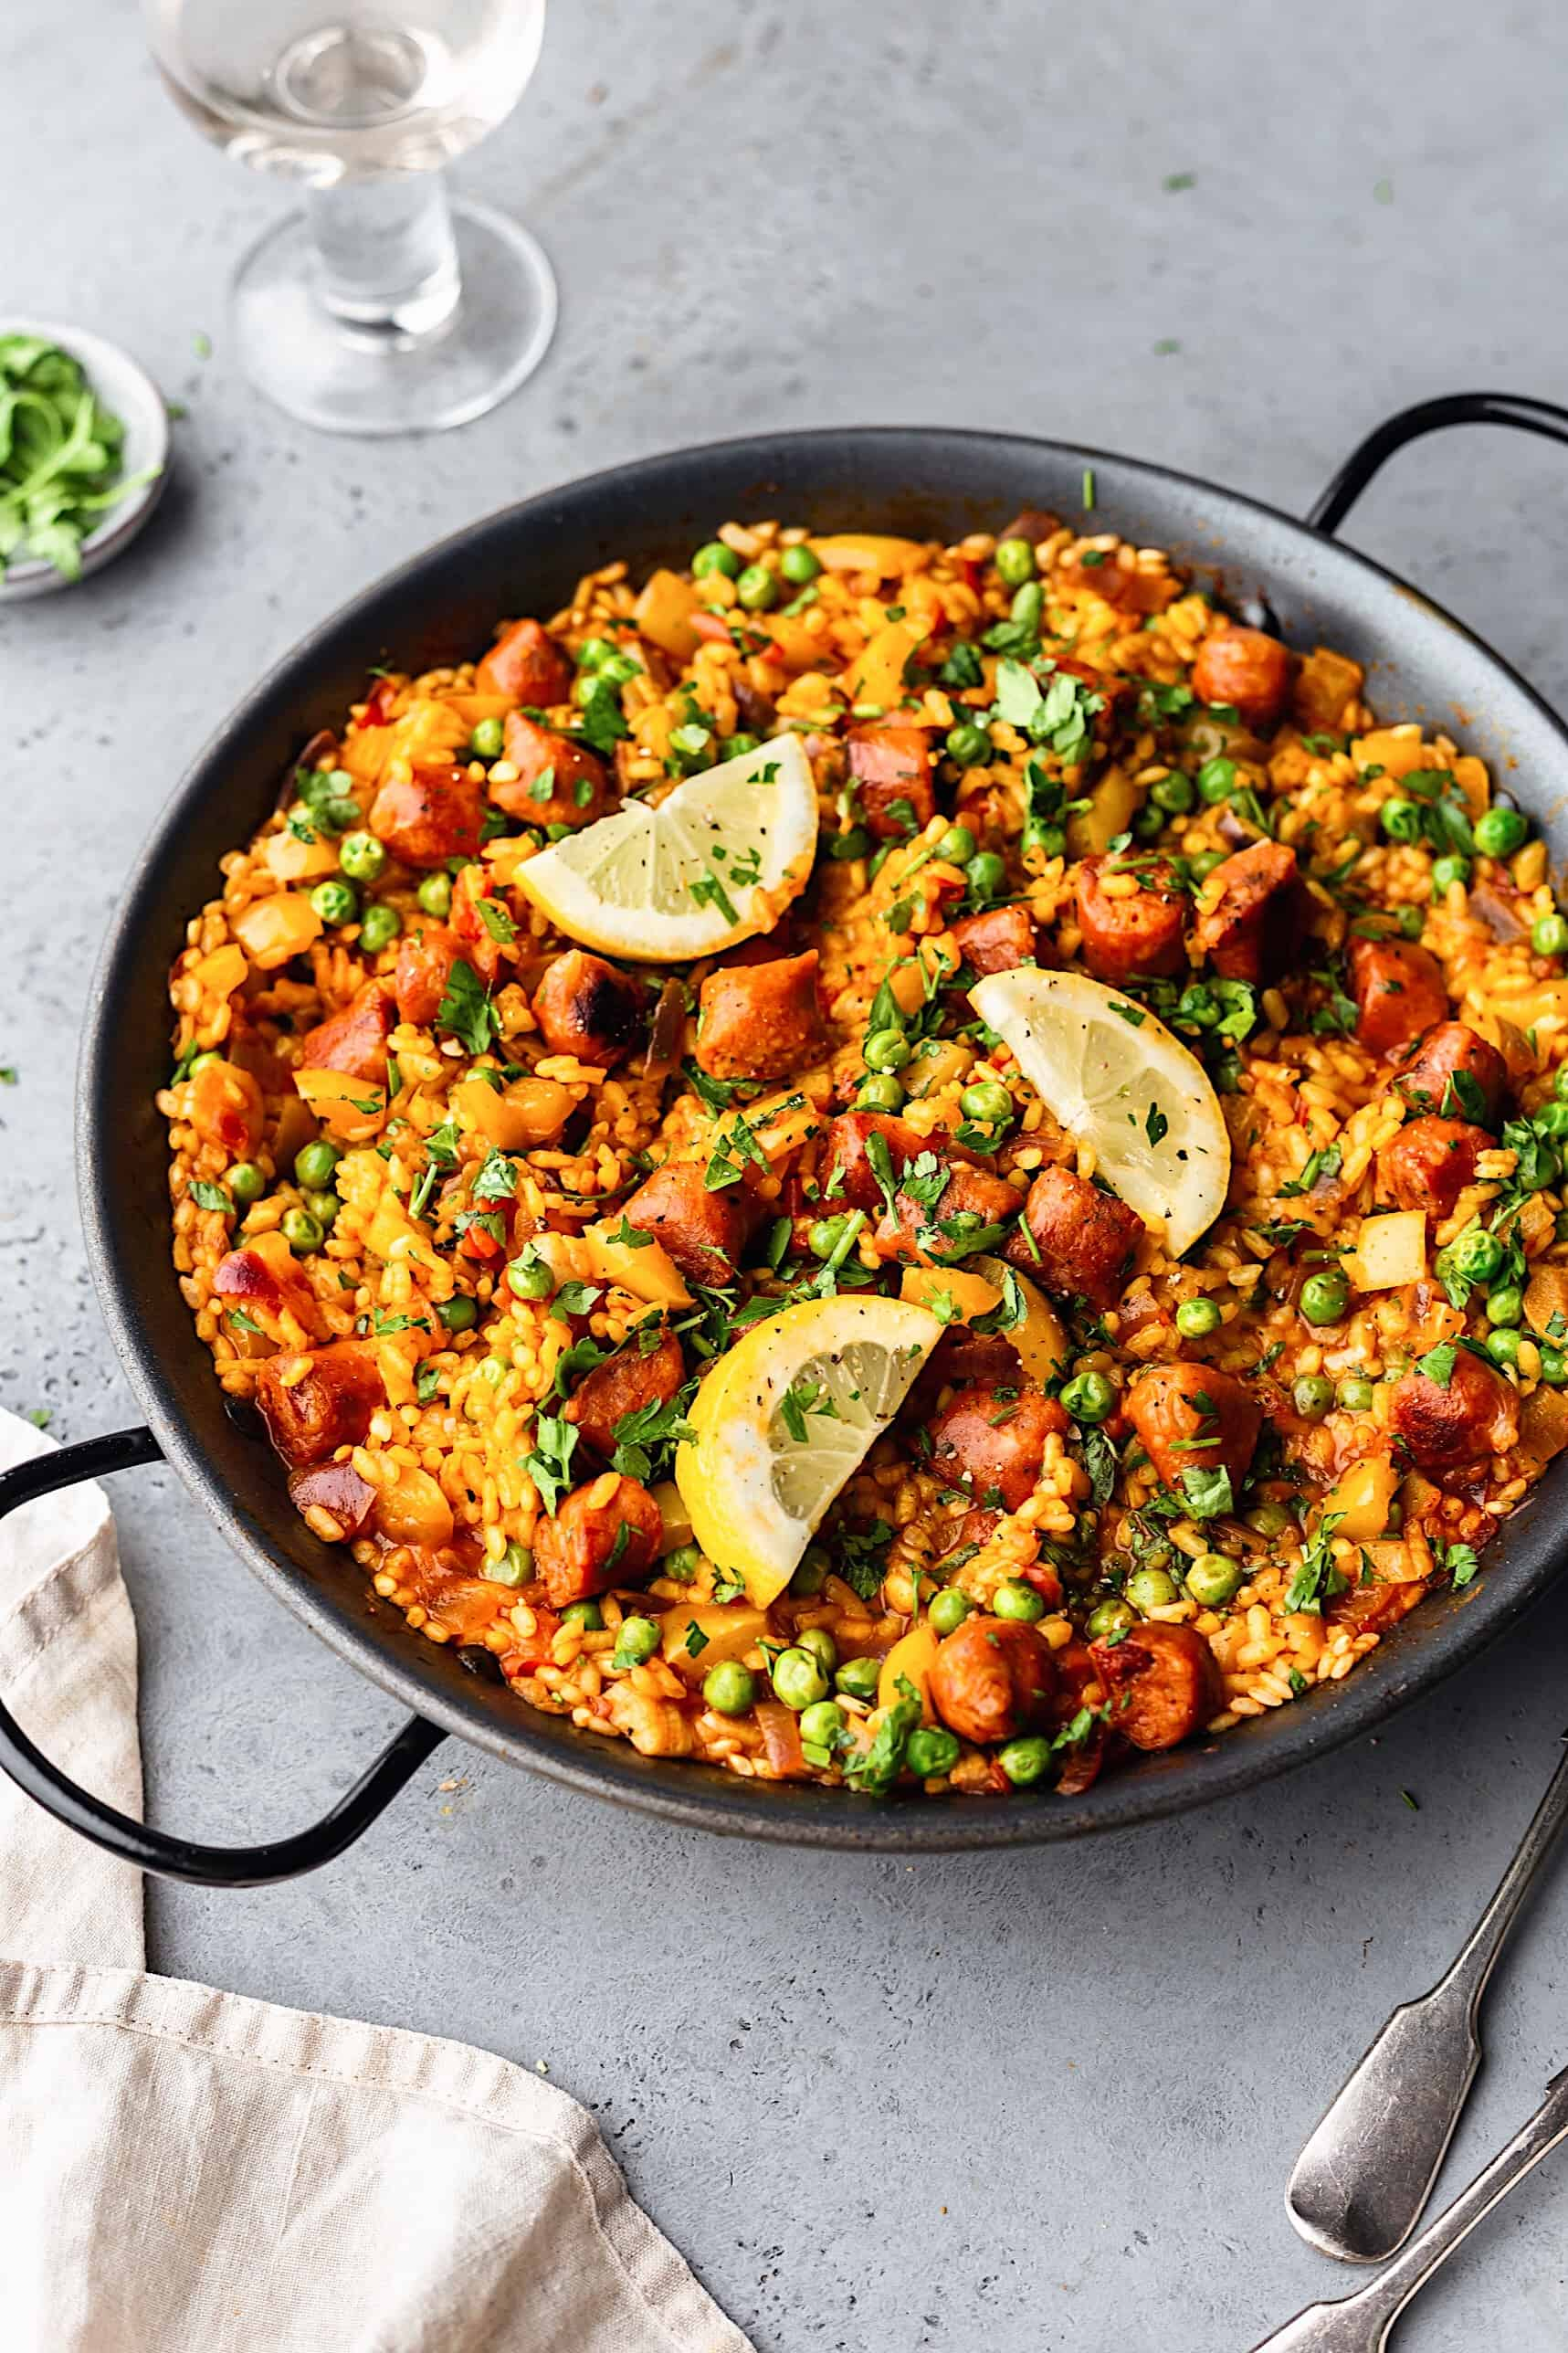 Vegan Chorizo Vegetable Paella #paella #vegan #recipe #food #rice #chorizo